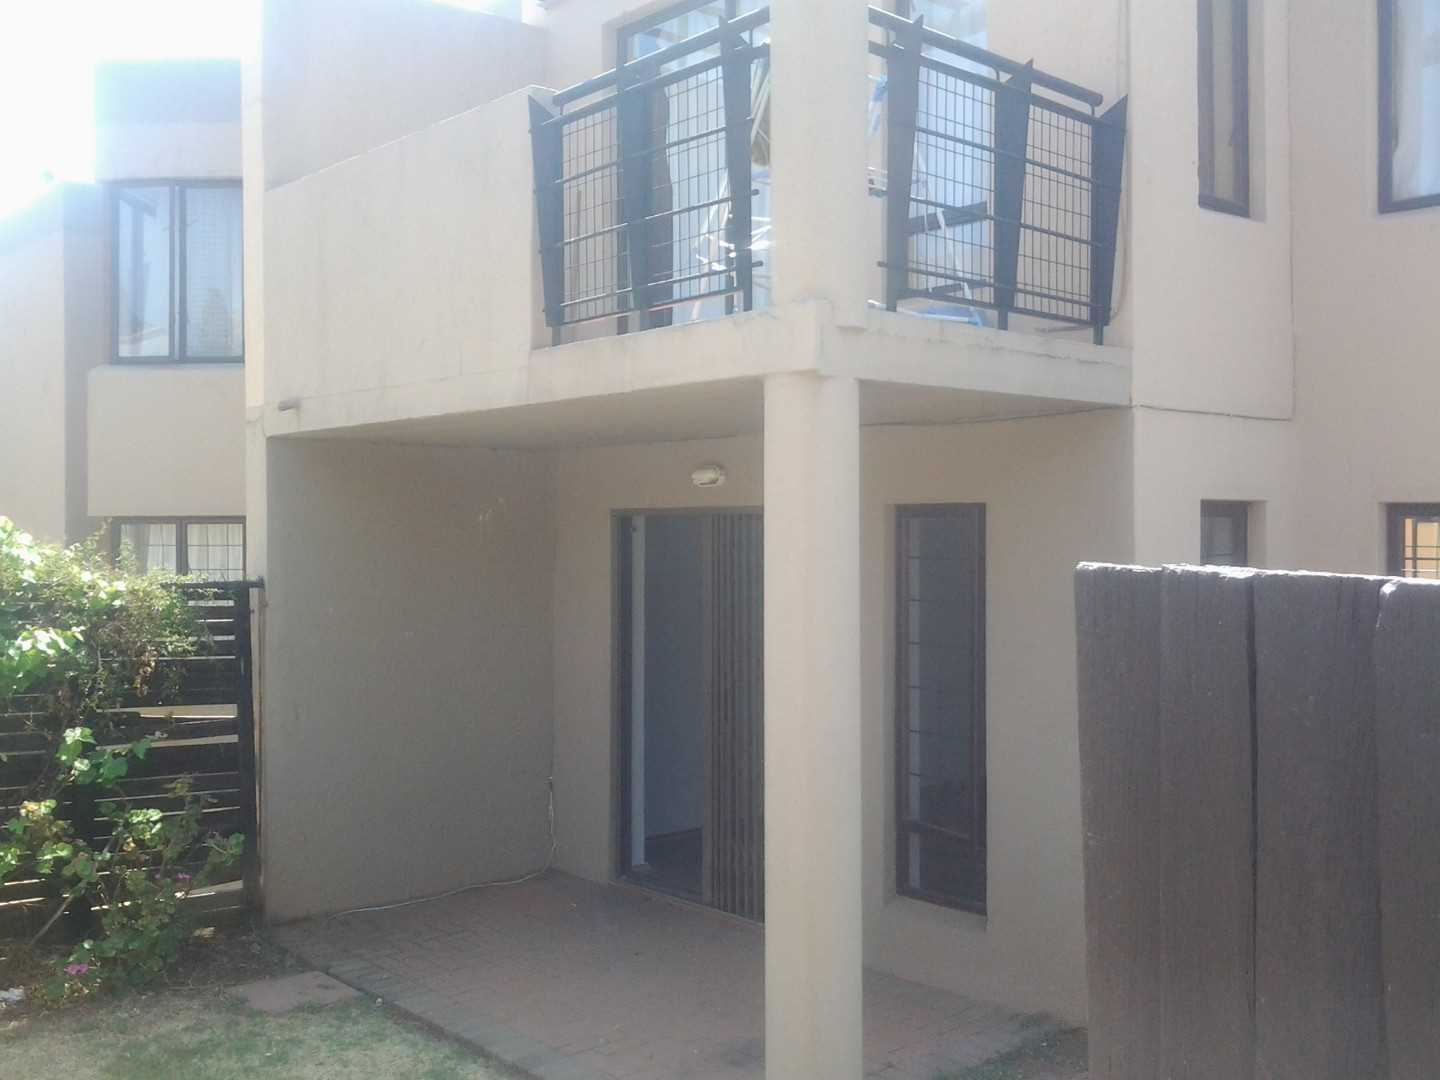 Bachelor or investment ground floor unit up for grabs